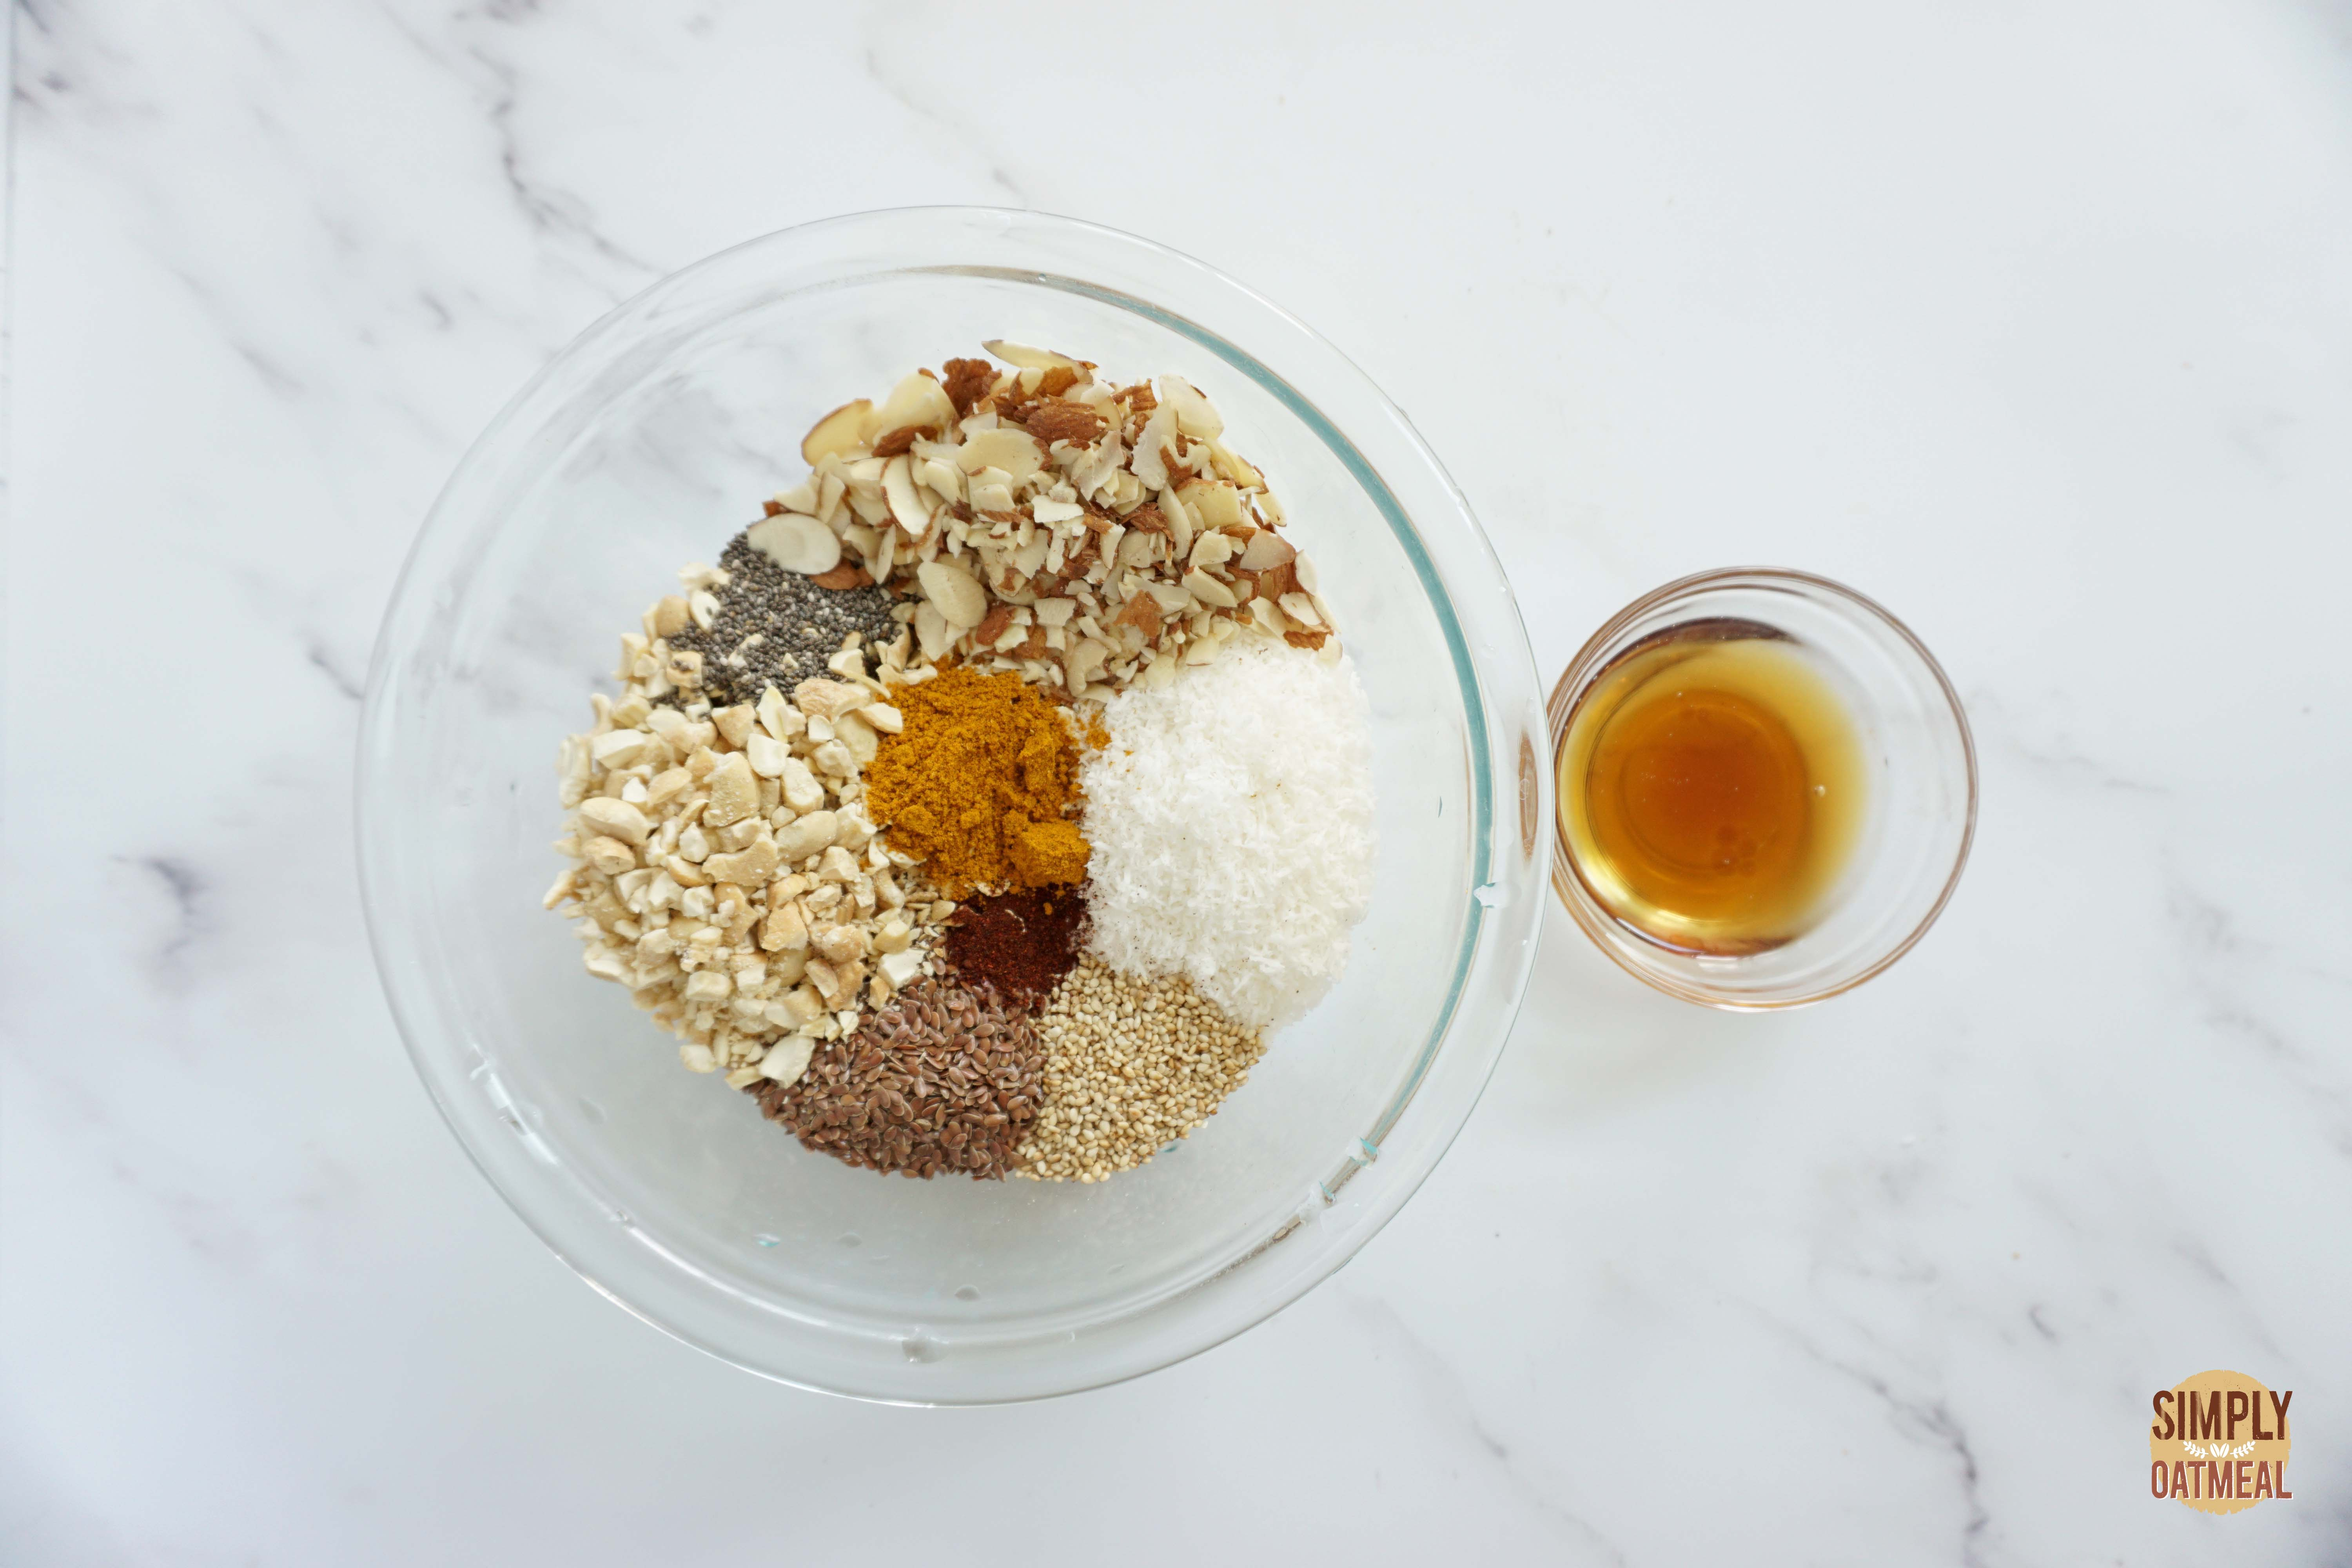 Wet and dry ingredients to make cashew curry granola